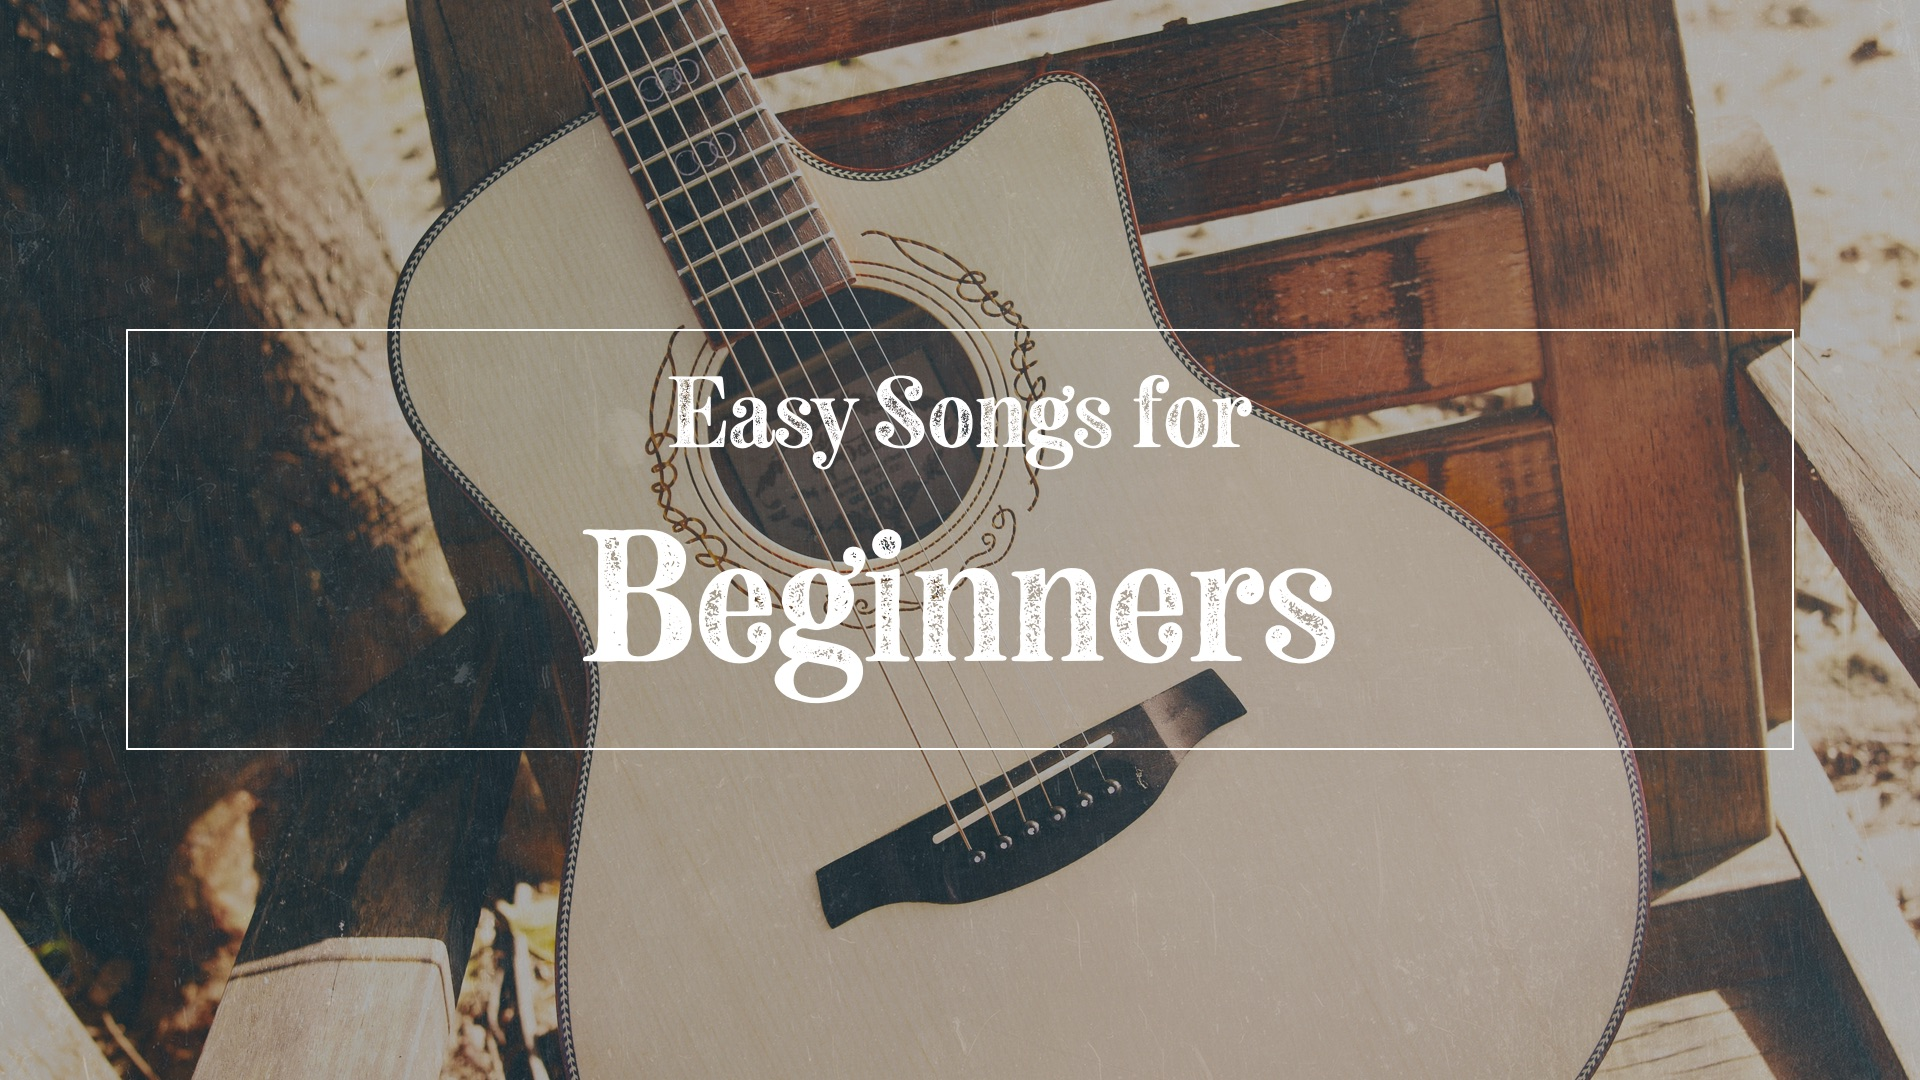 Easy songs with guitar chords - acoustic guitar